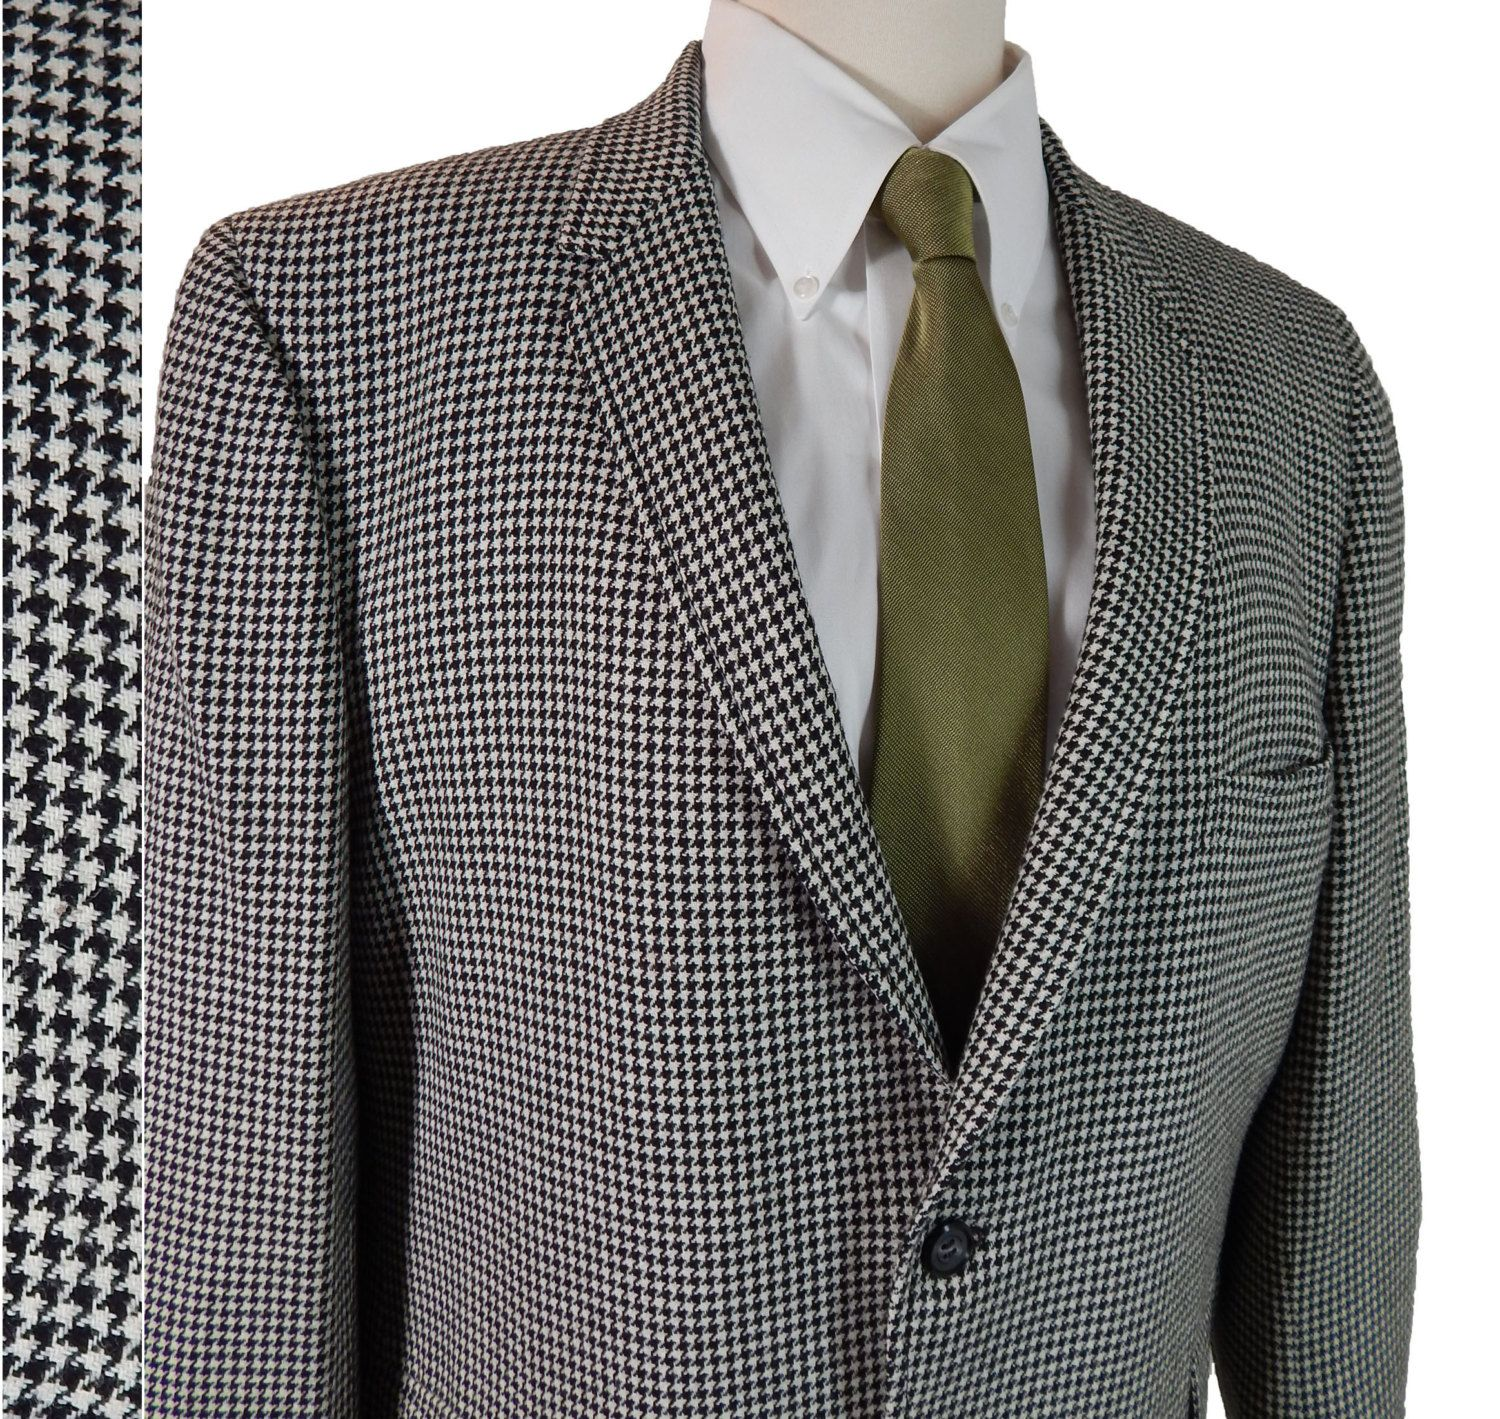 Vintage 1960s Mens Sport Coat // 60s Narrow Lapels Black and White ...